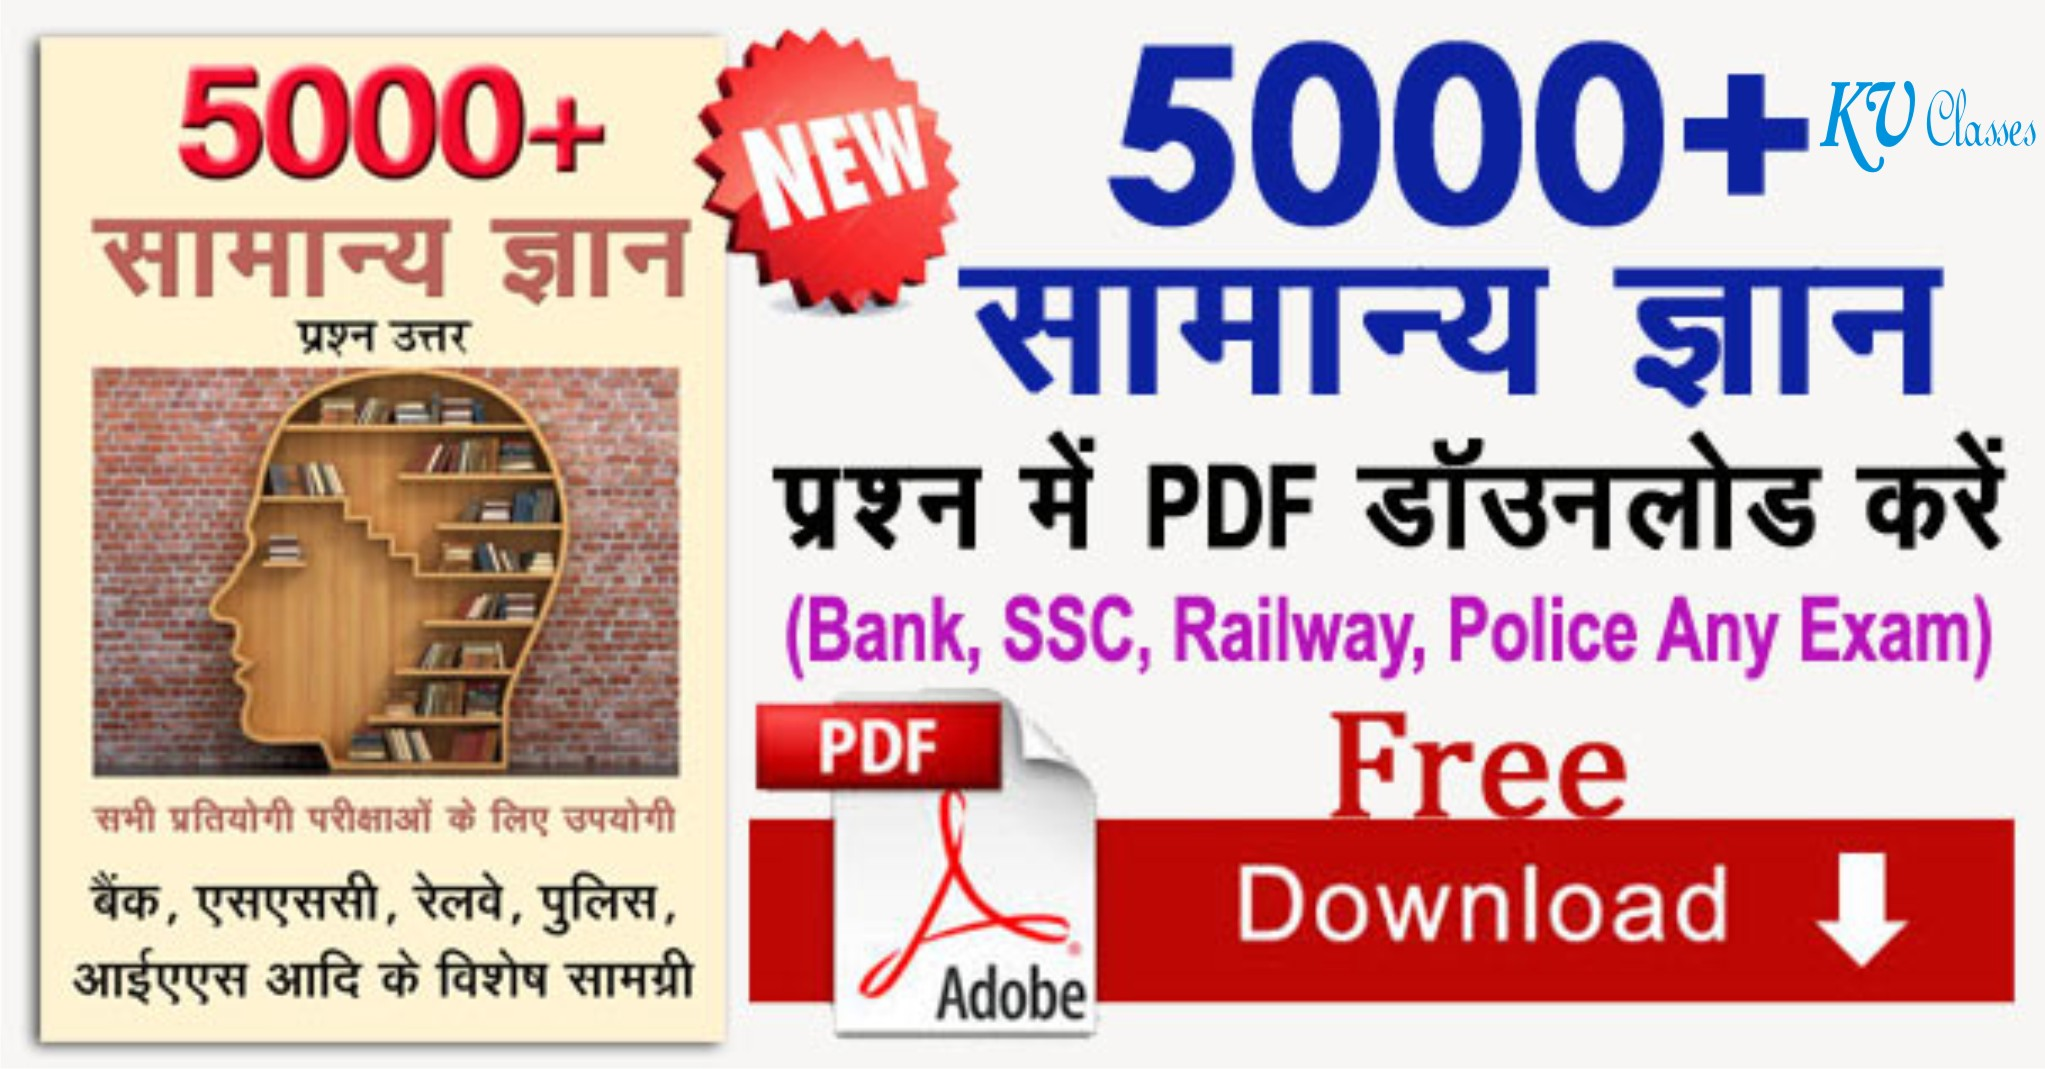 10000 gk question in hindi pdf download